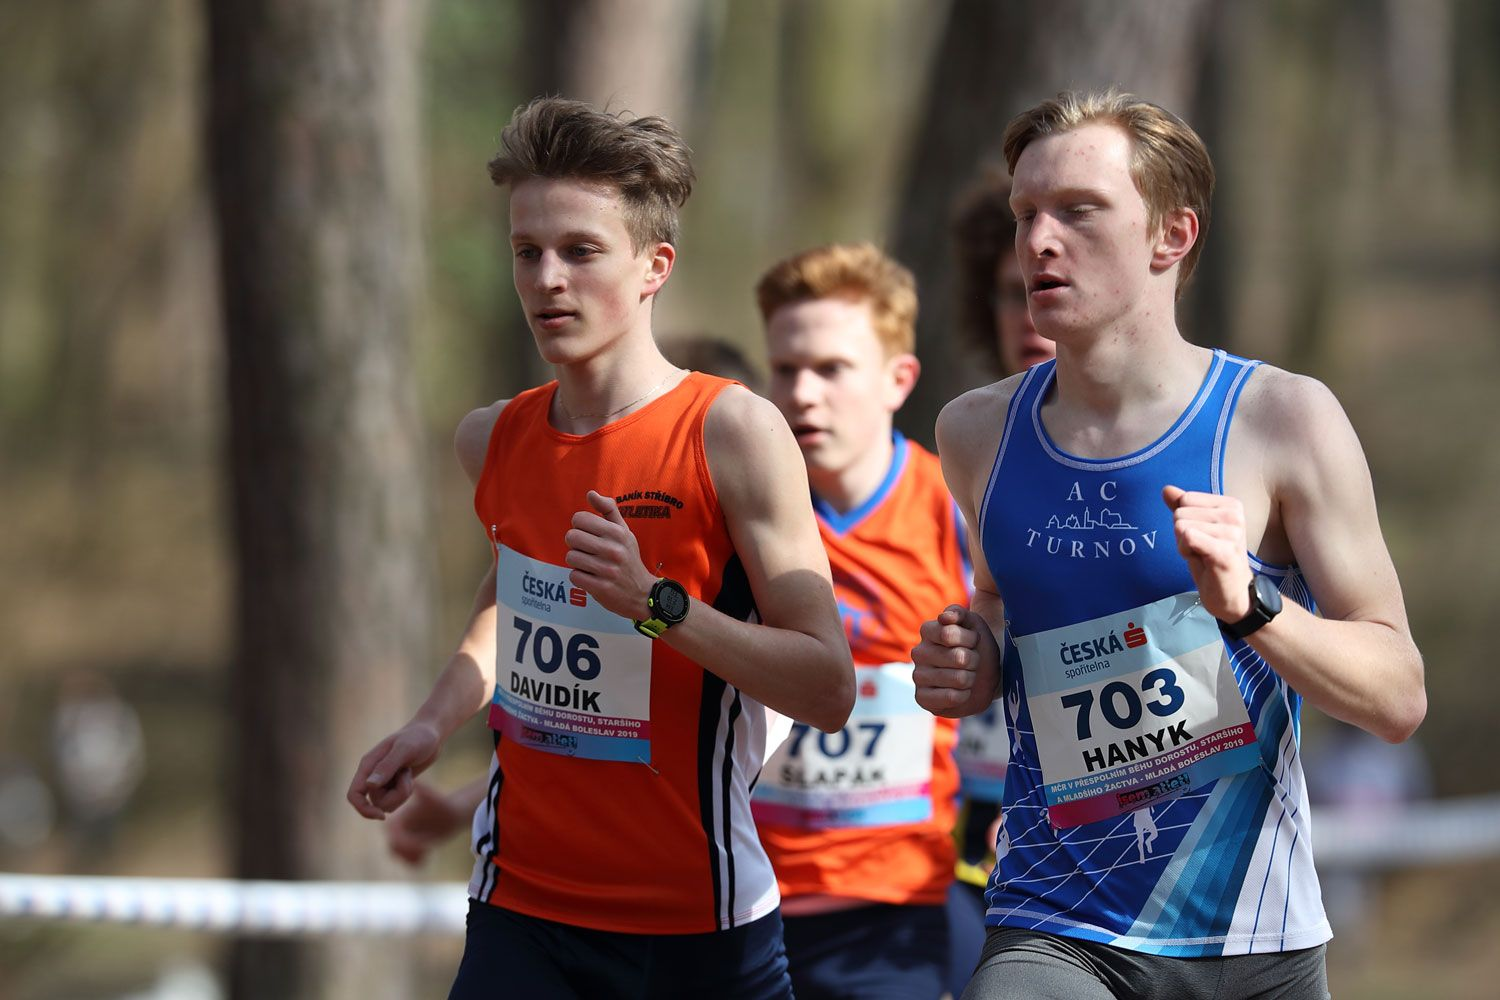 CZ Chamionship Cross Country Mlada Boleslav 30